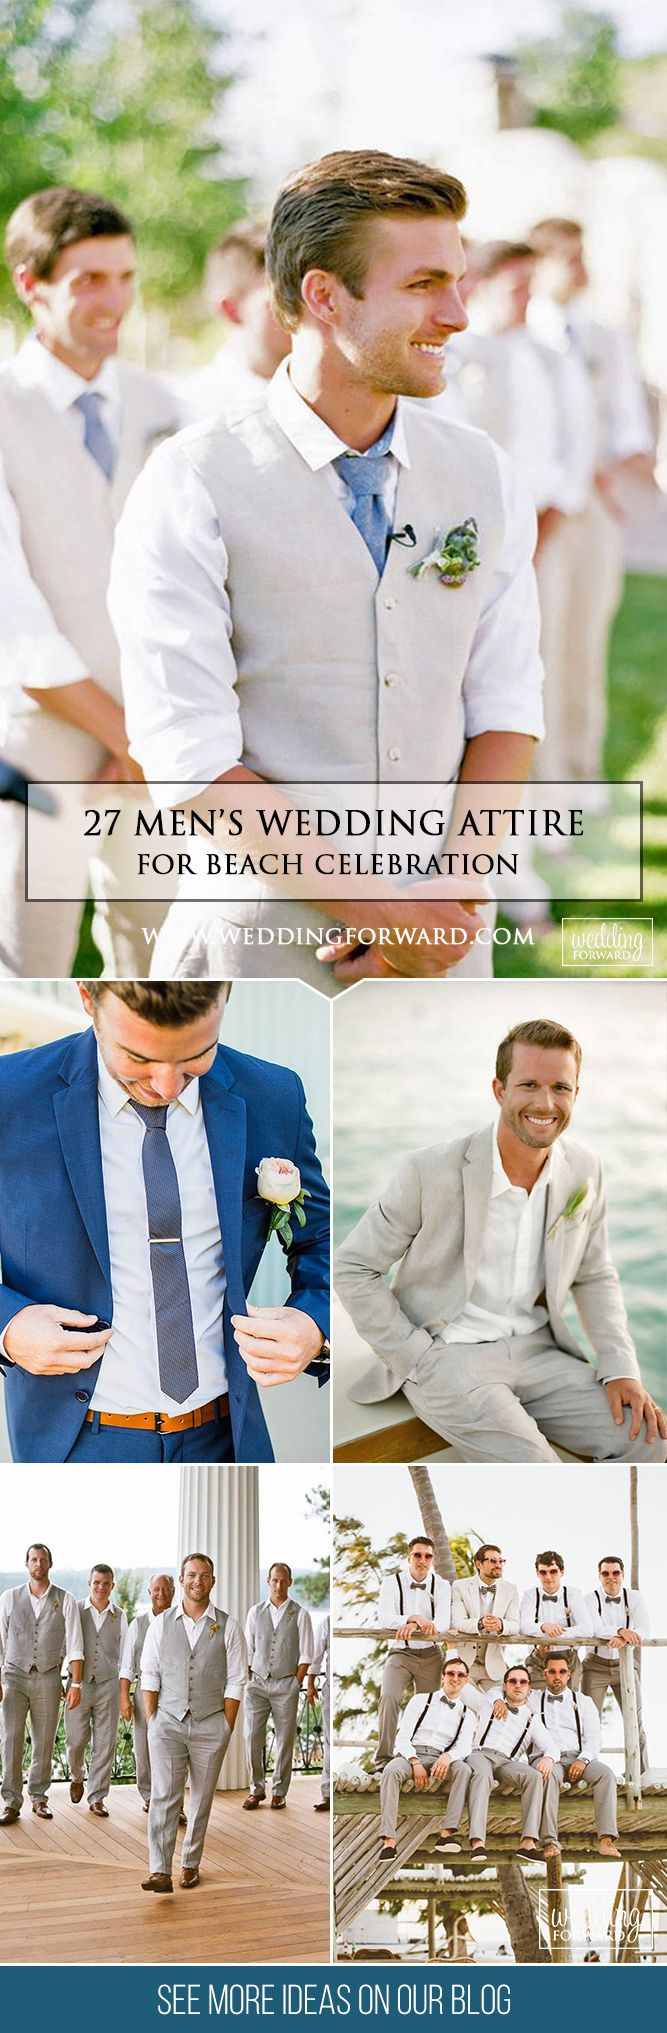 27 Men's Wedding Attire For Beach Celebration ❤ You have decided to do a beach wedding ceremony? Looking for men's wedding attire to be appropriate? See more: http://www.weddingforward.com/mens-wedding-attire/ #weddings #groom